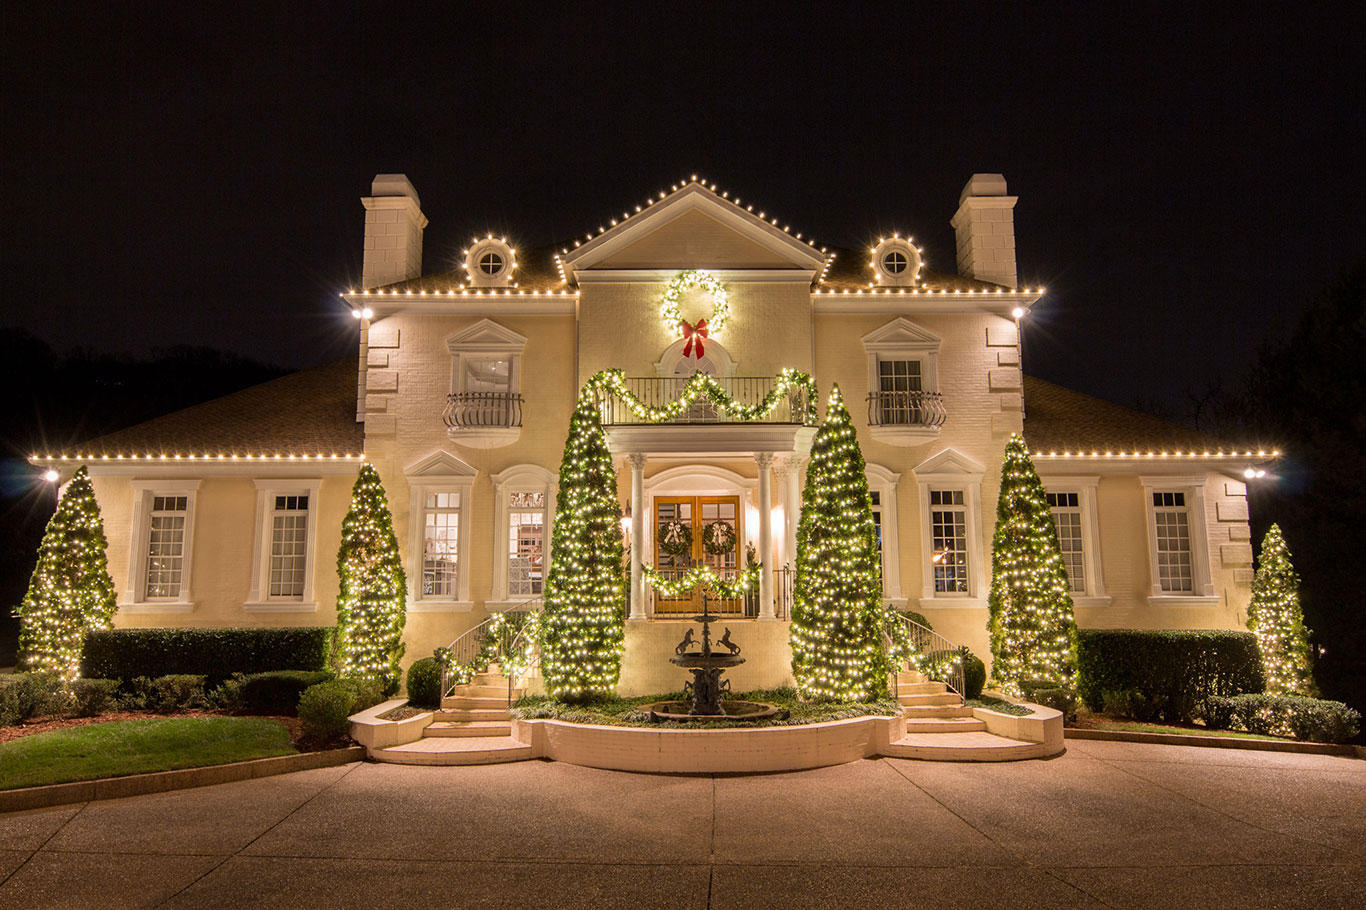 Holiday Lighting - Let us handle the work so you can enjoy the holidays!